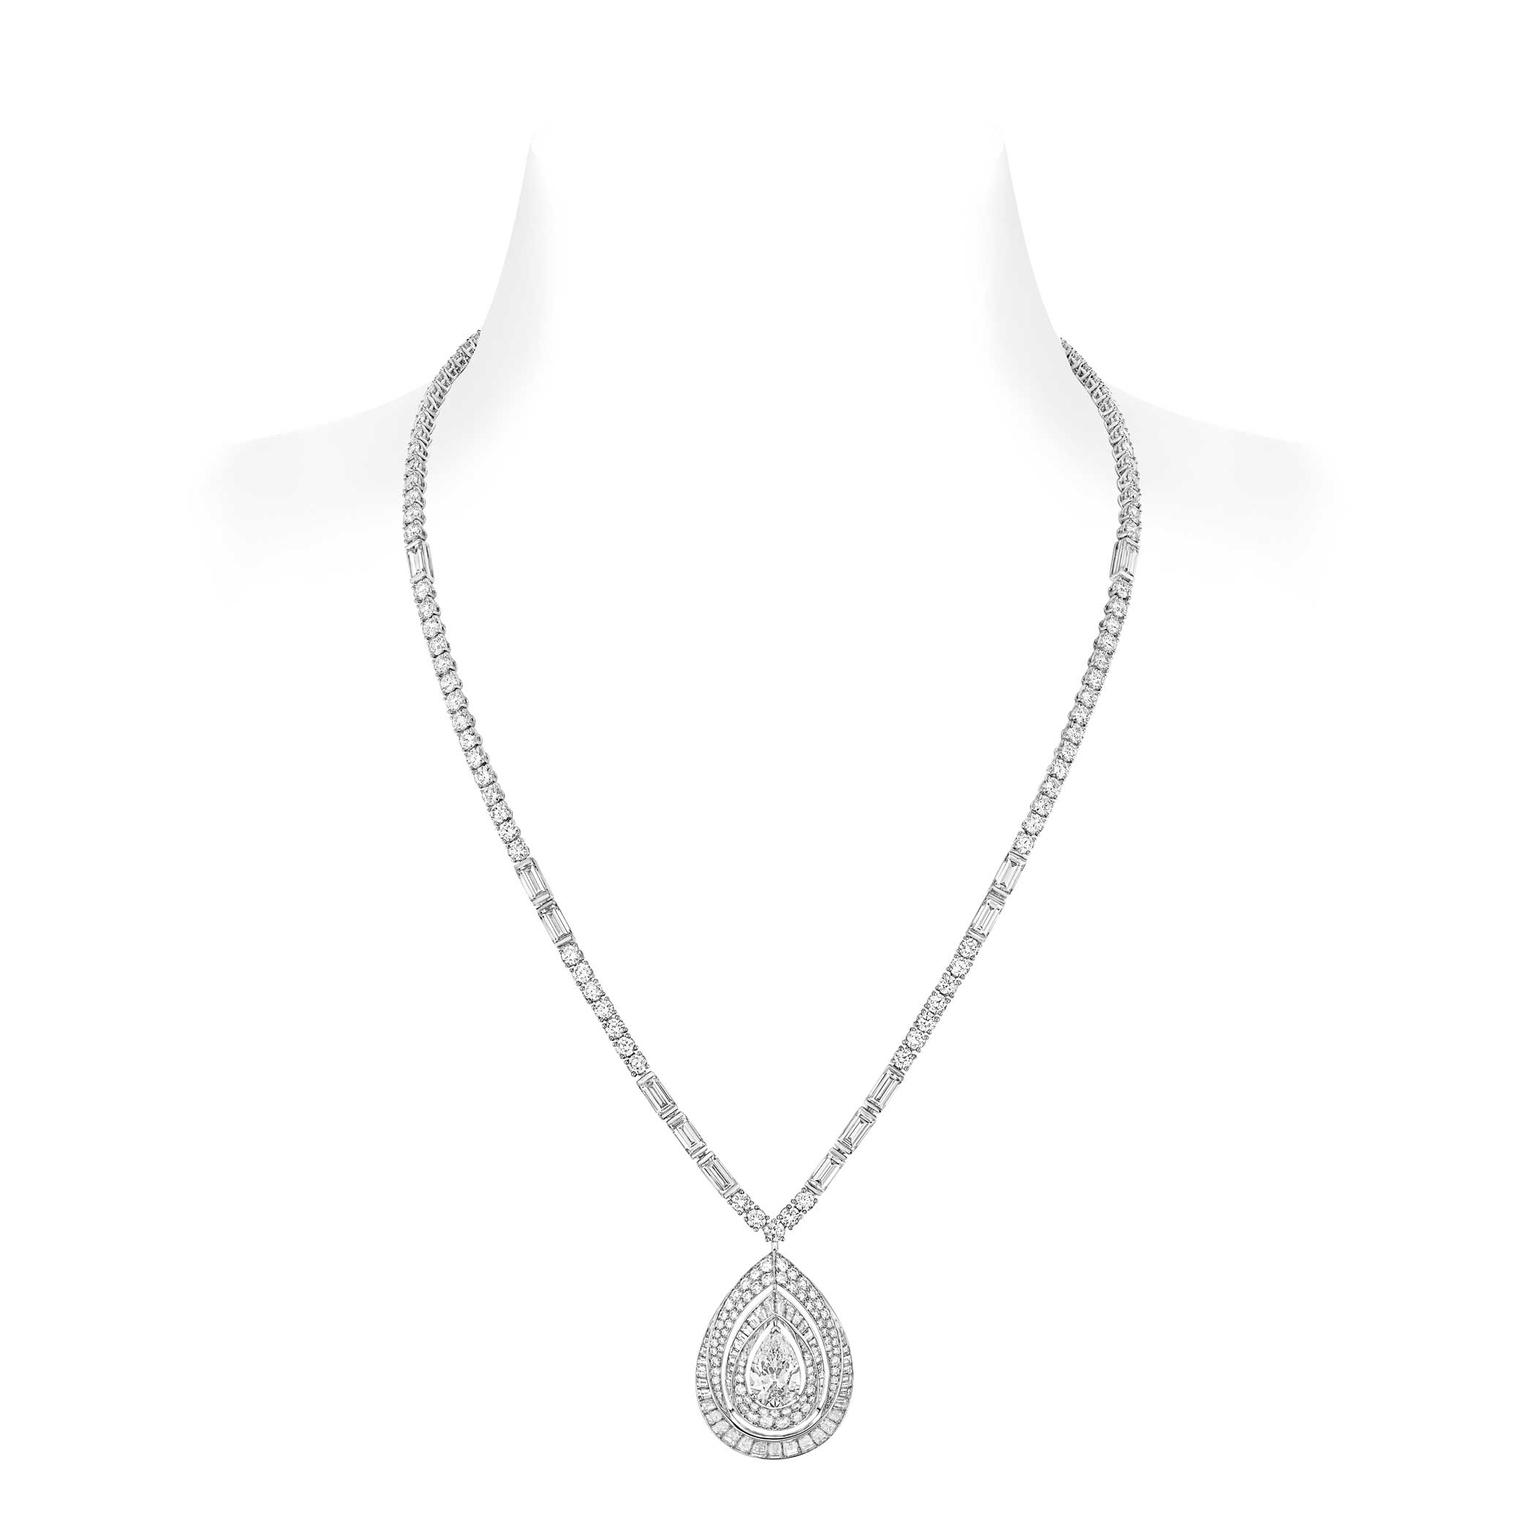 Chaumet Rondes de Nuit Joséphine diamond necklace